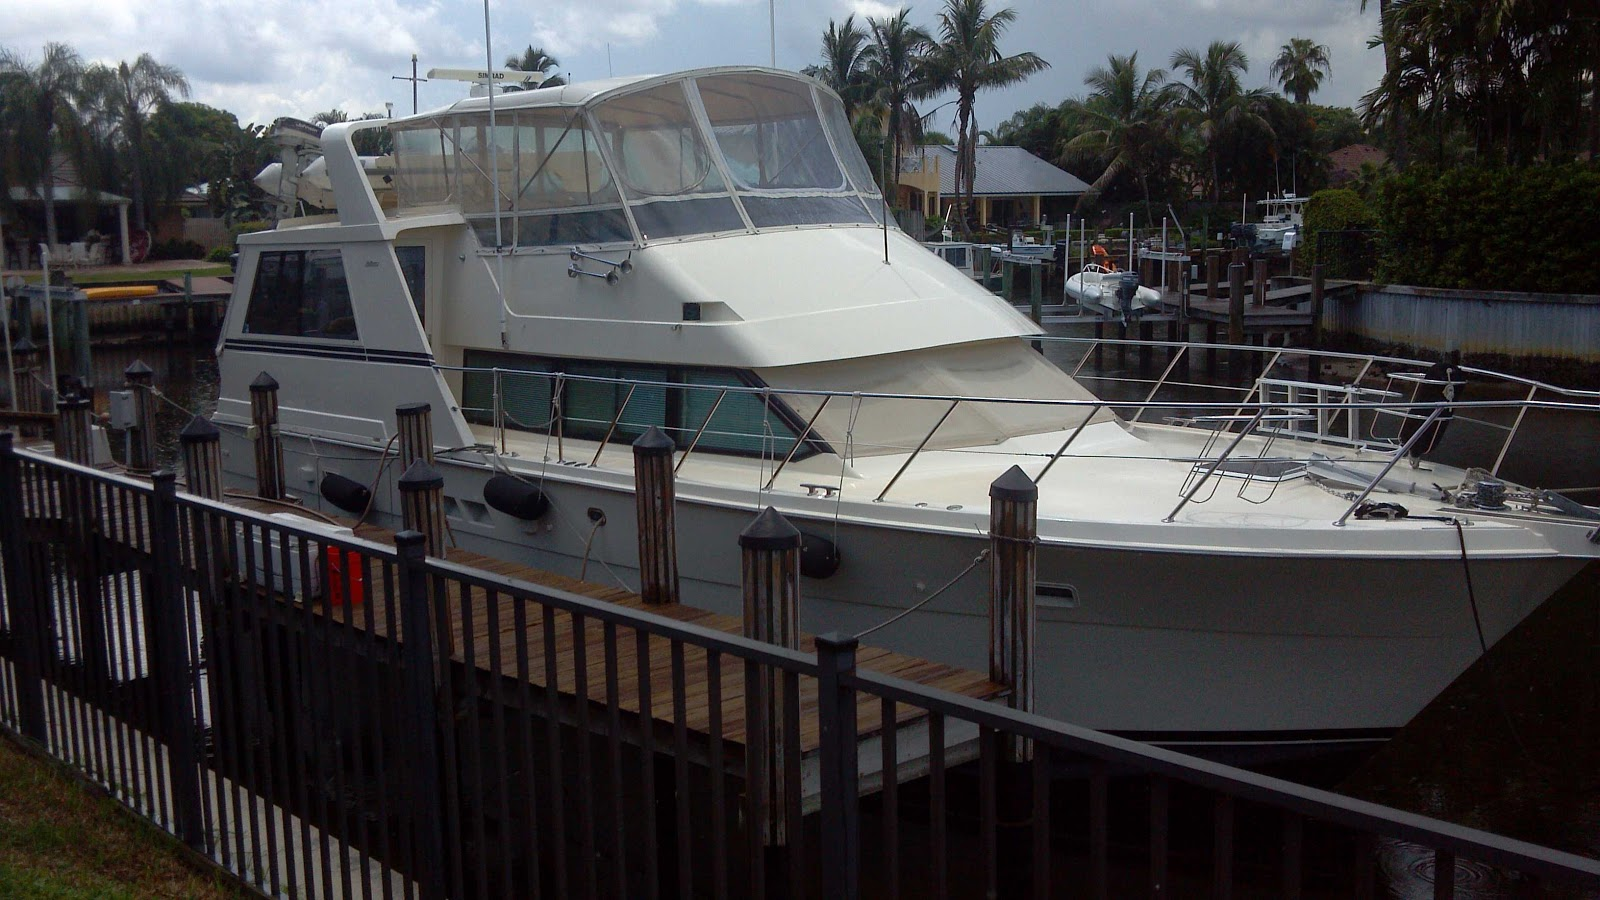 We looked at a 52' Hatteras motor yacht ...